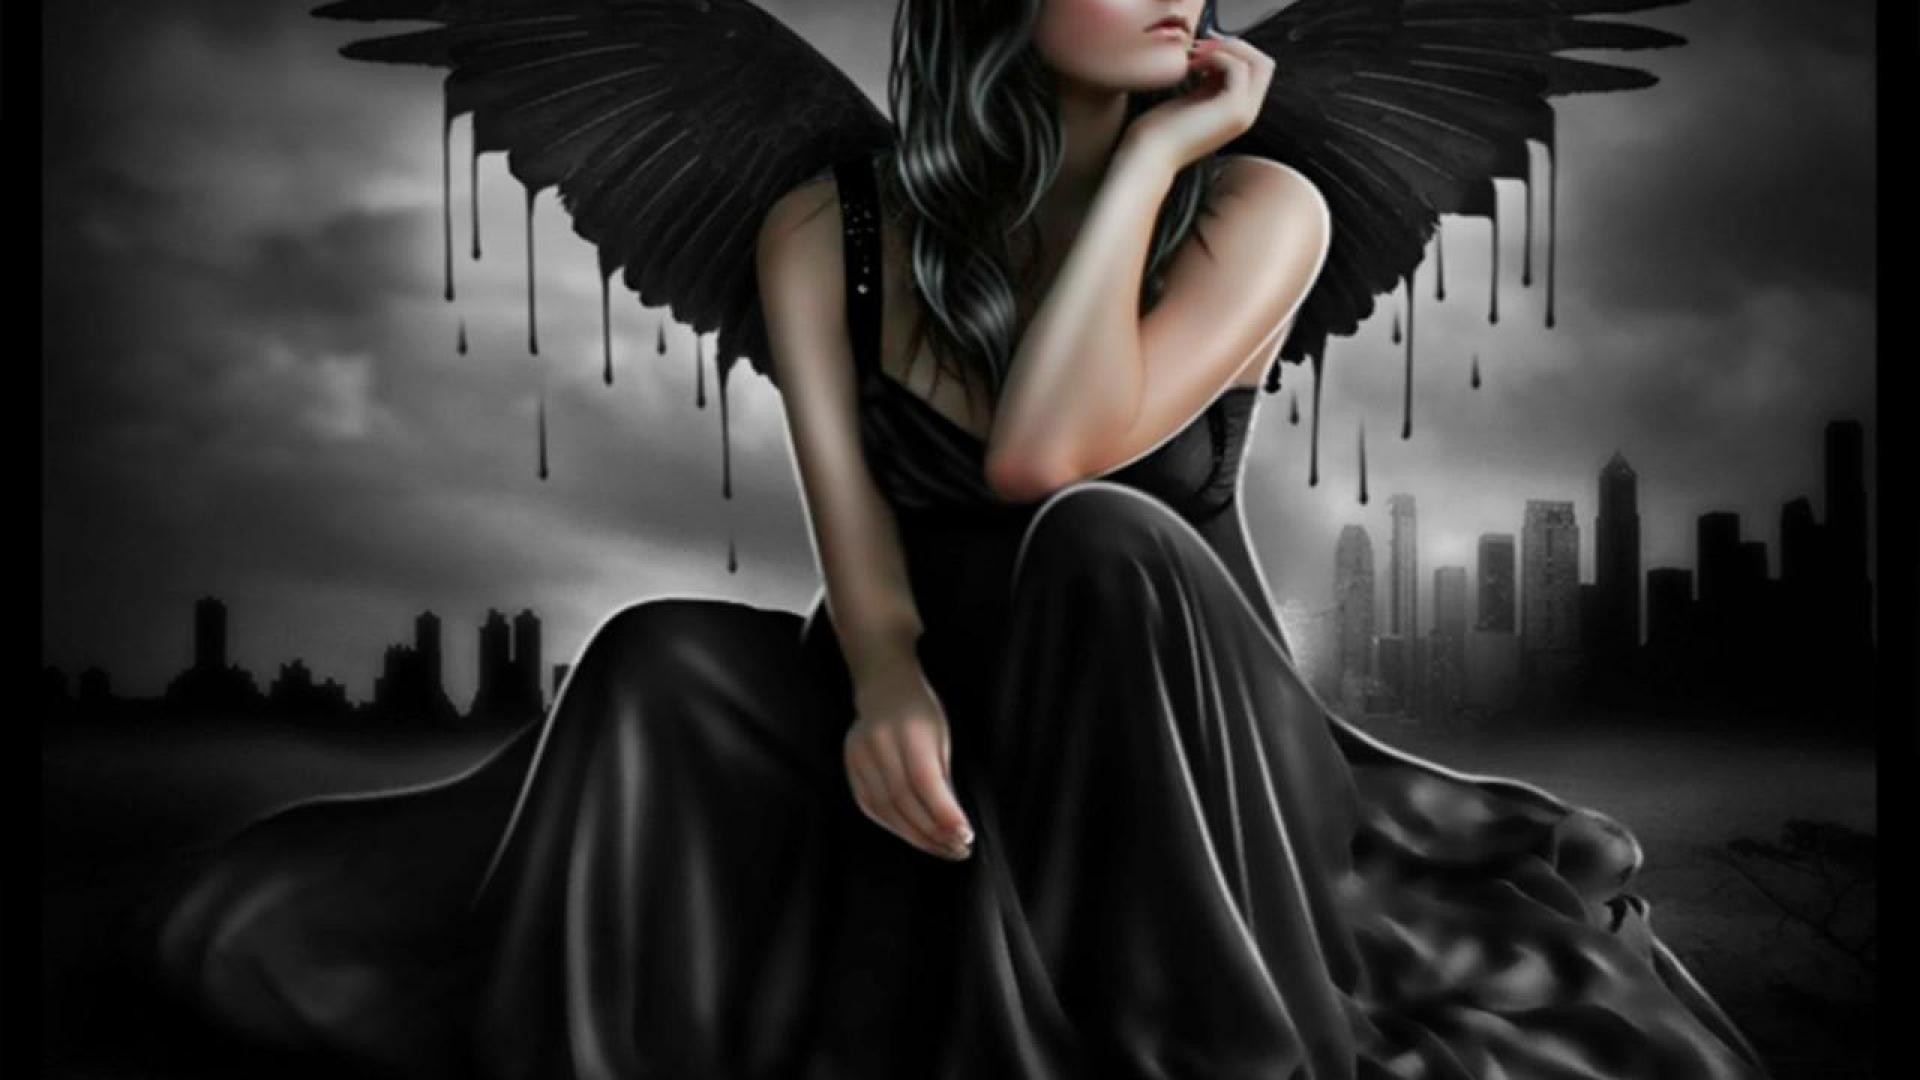 Res: 1920x1080, Awesome Gothic Angels HD Wallpaper Pack 69 » Free Download